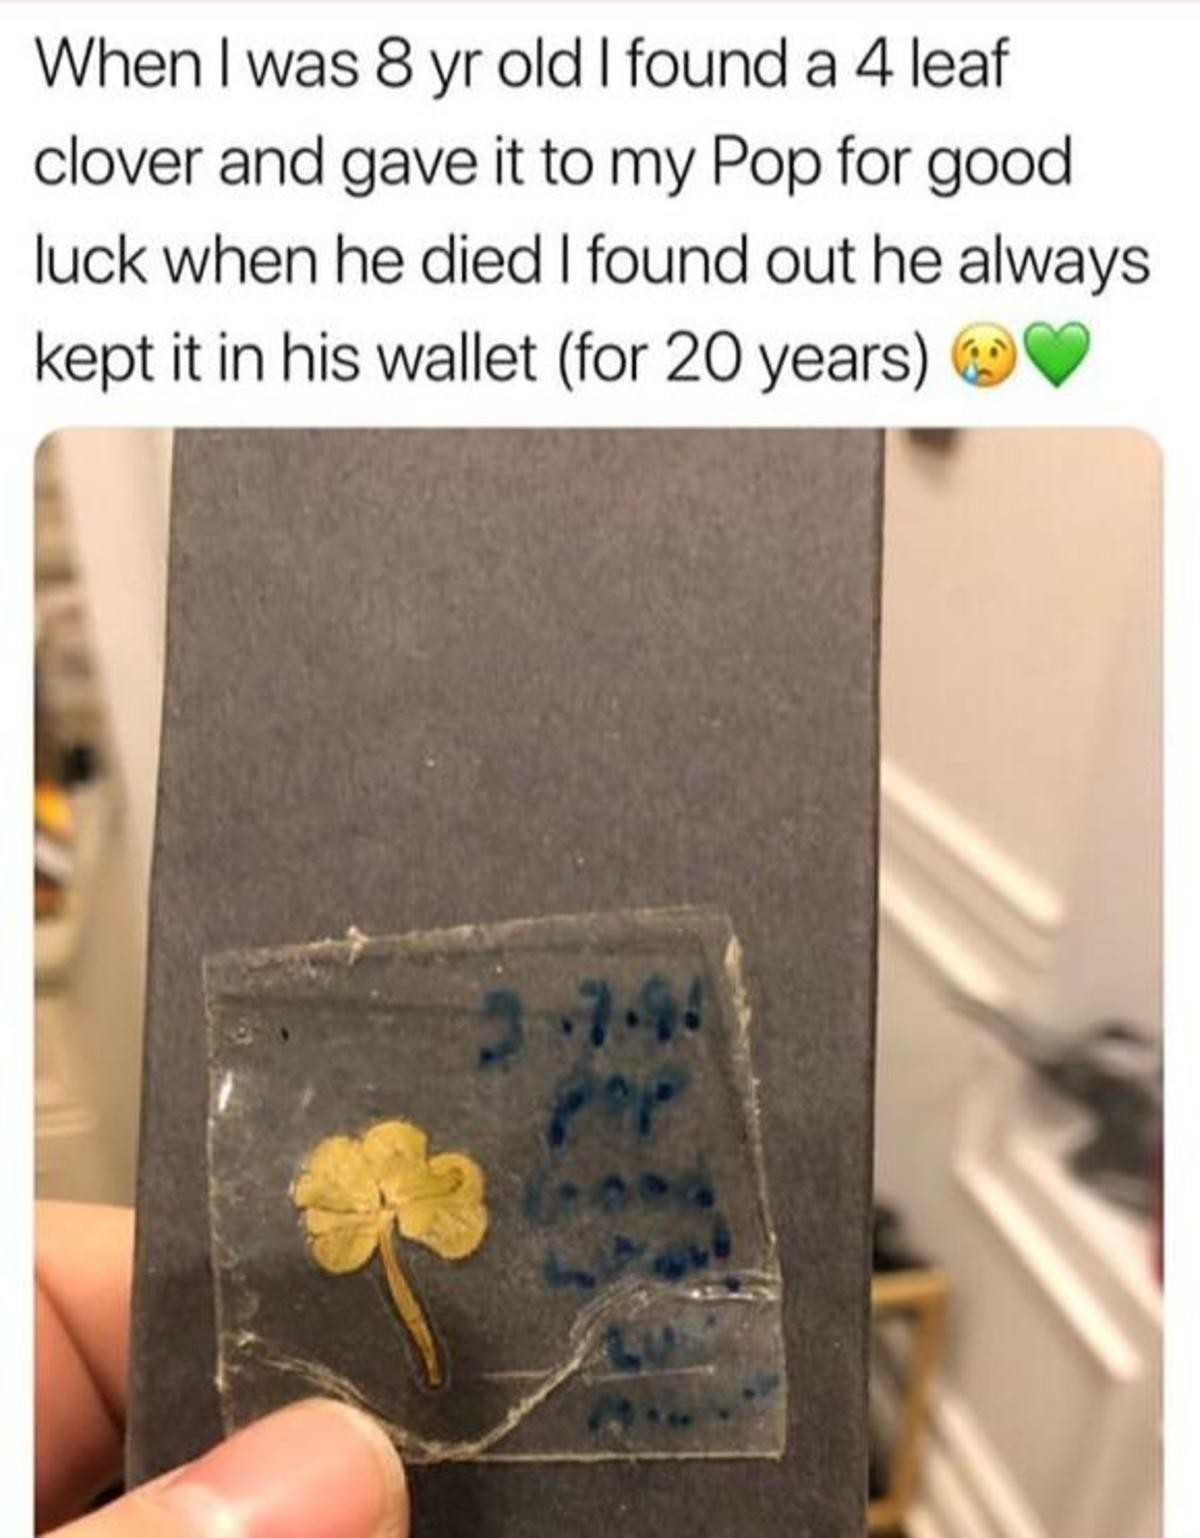 Too wholesome. My heart.. And now he has a precious family heirloom to pass down.